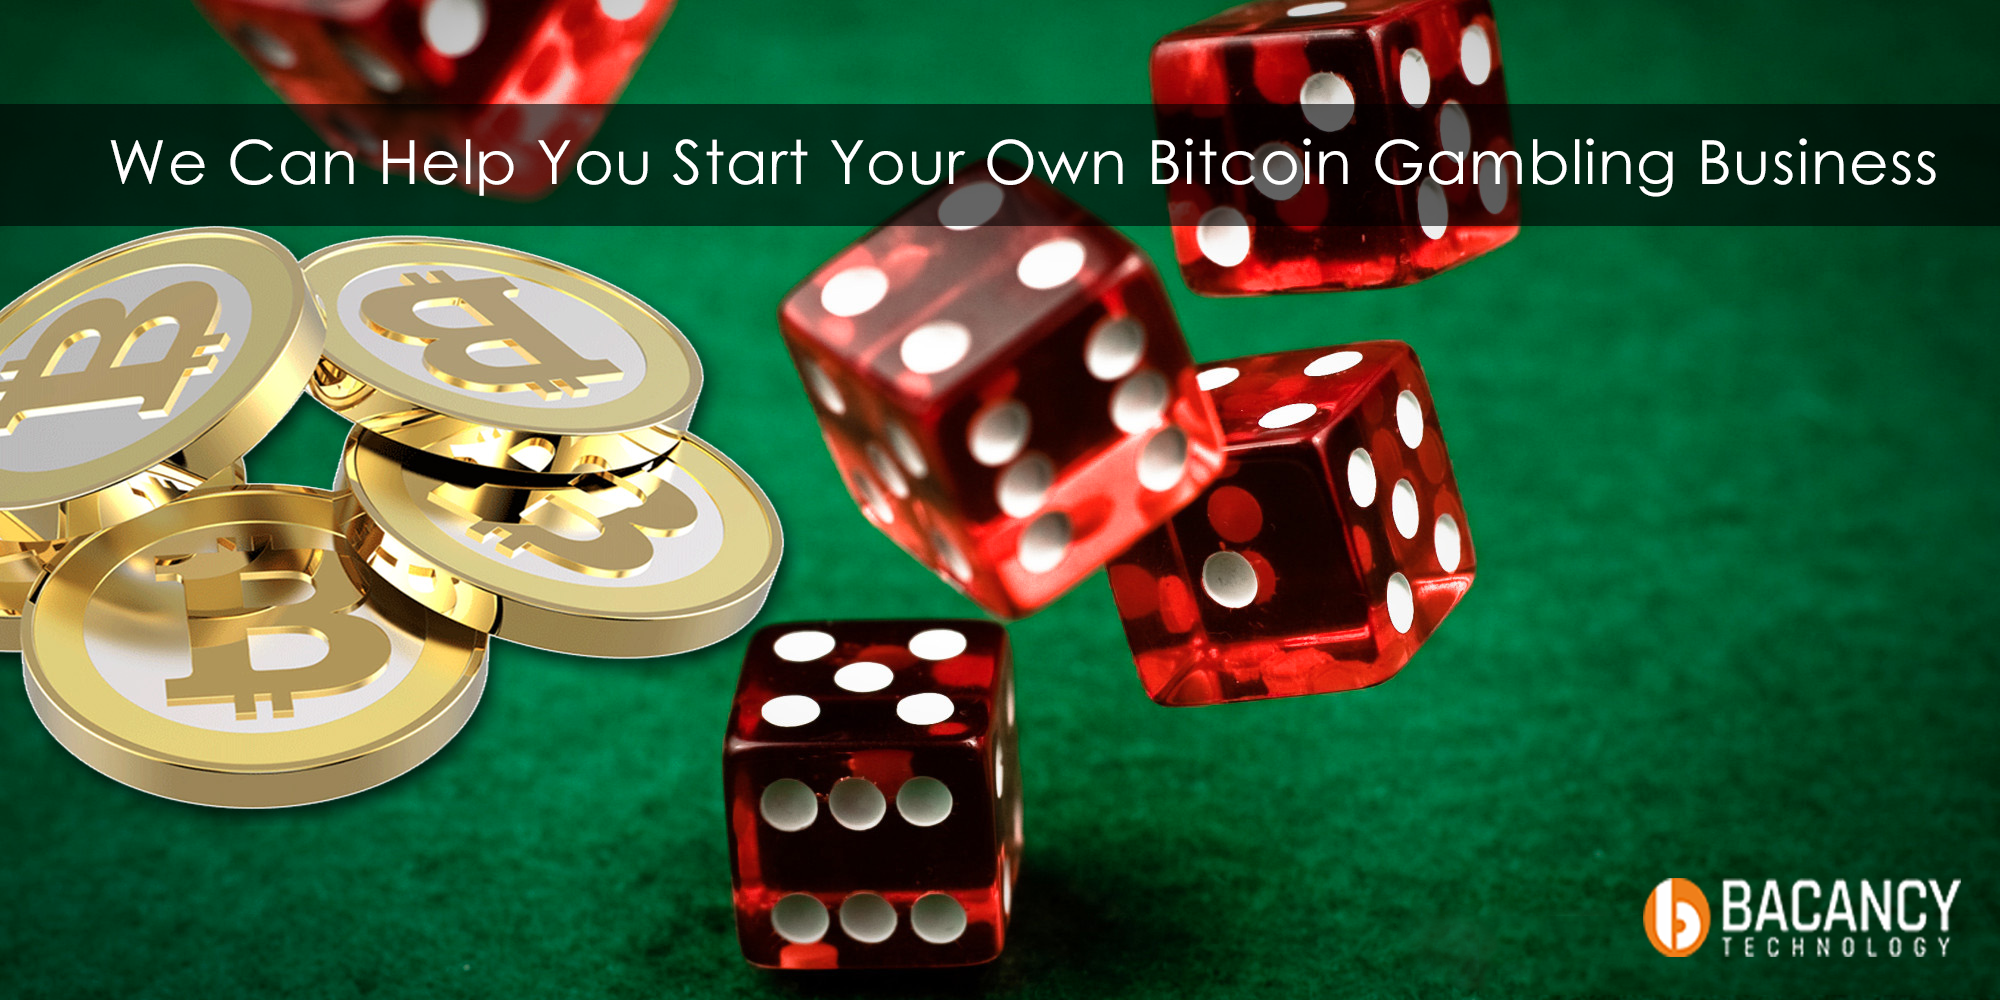 White Label Casino Software Solution For Your Own Online Gambling Business